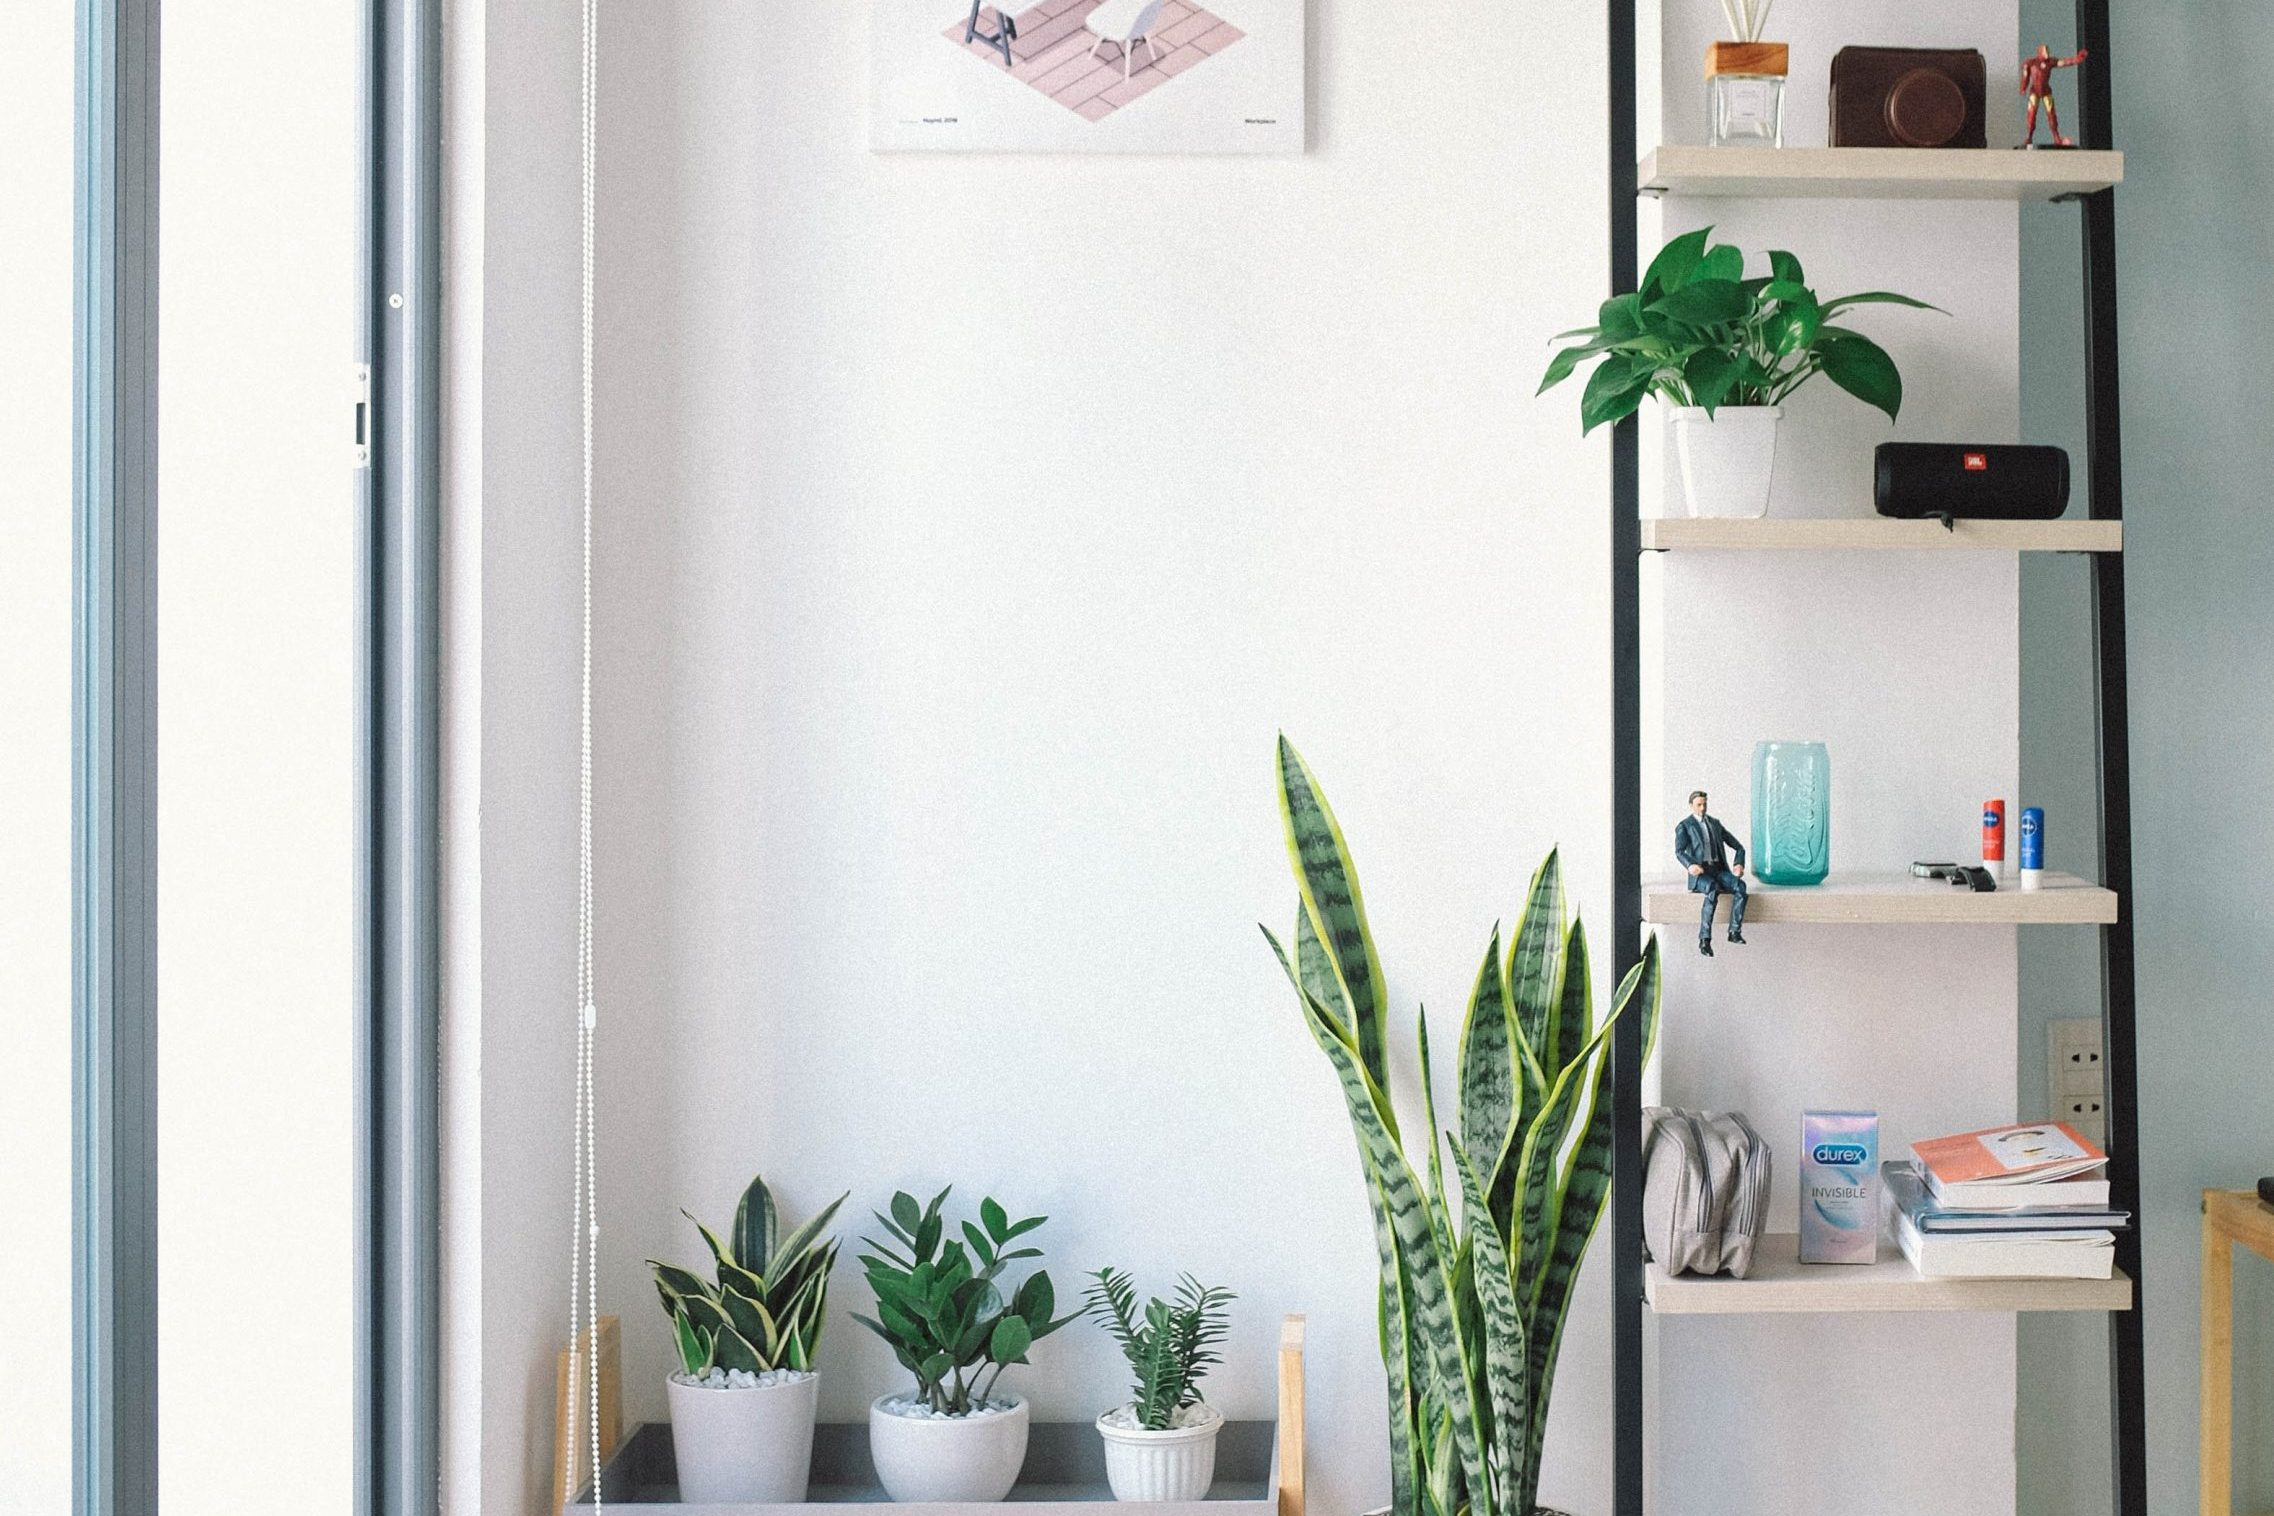 5 Indoor Plants That Will Purify and Beautify Your Home